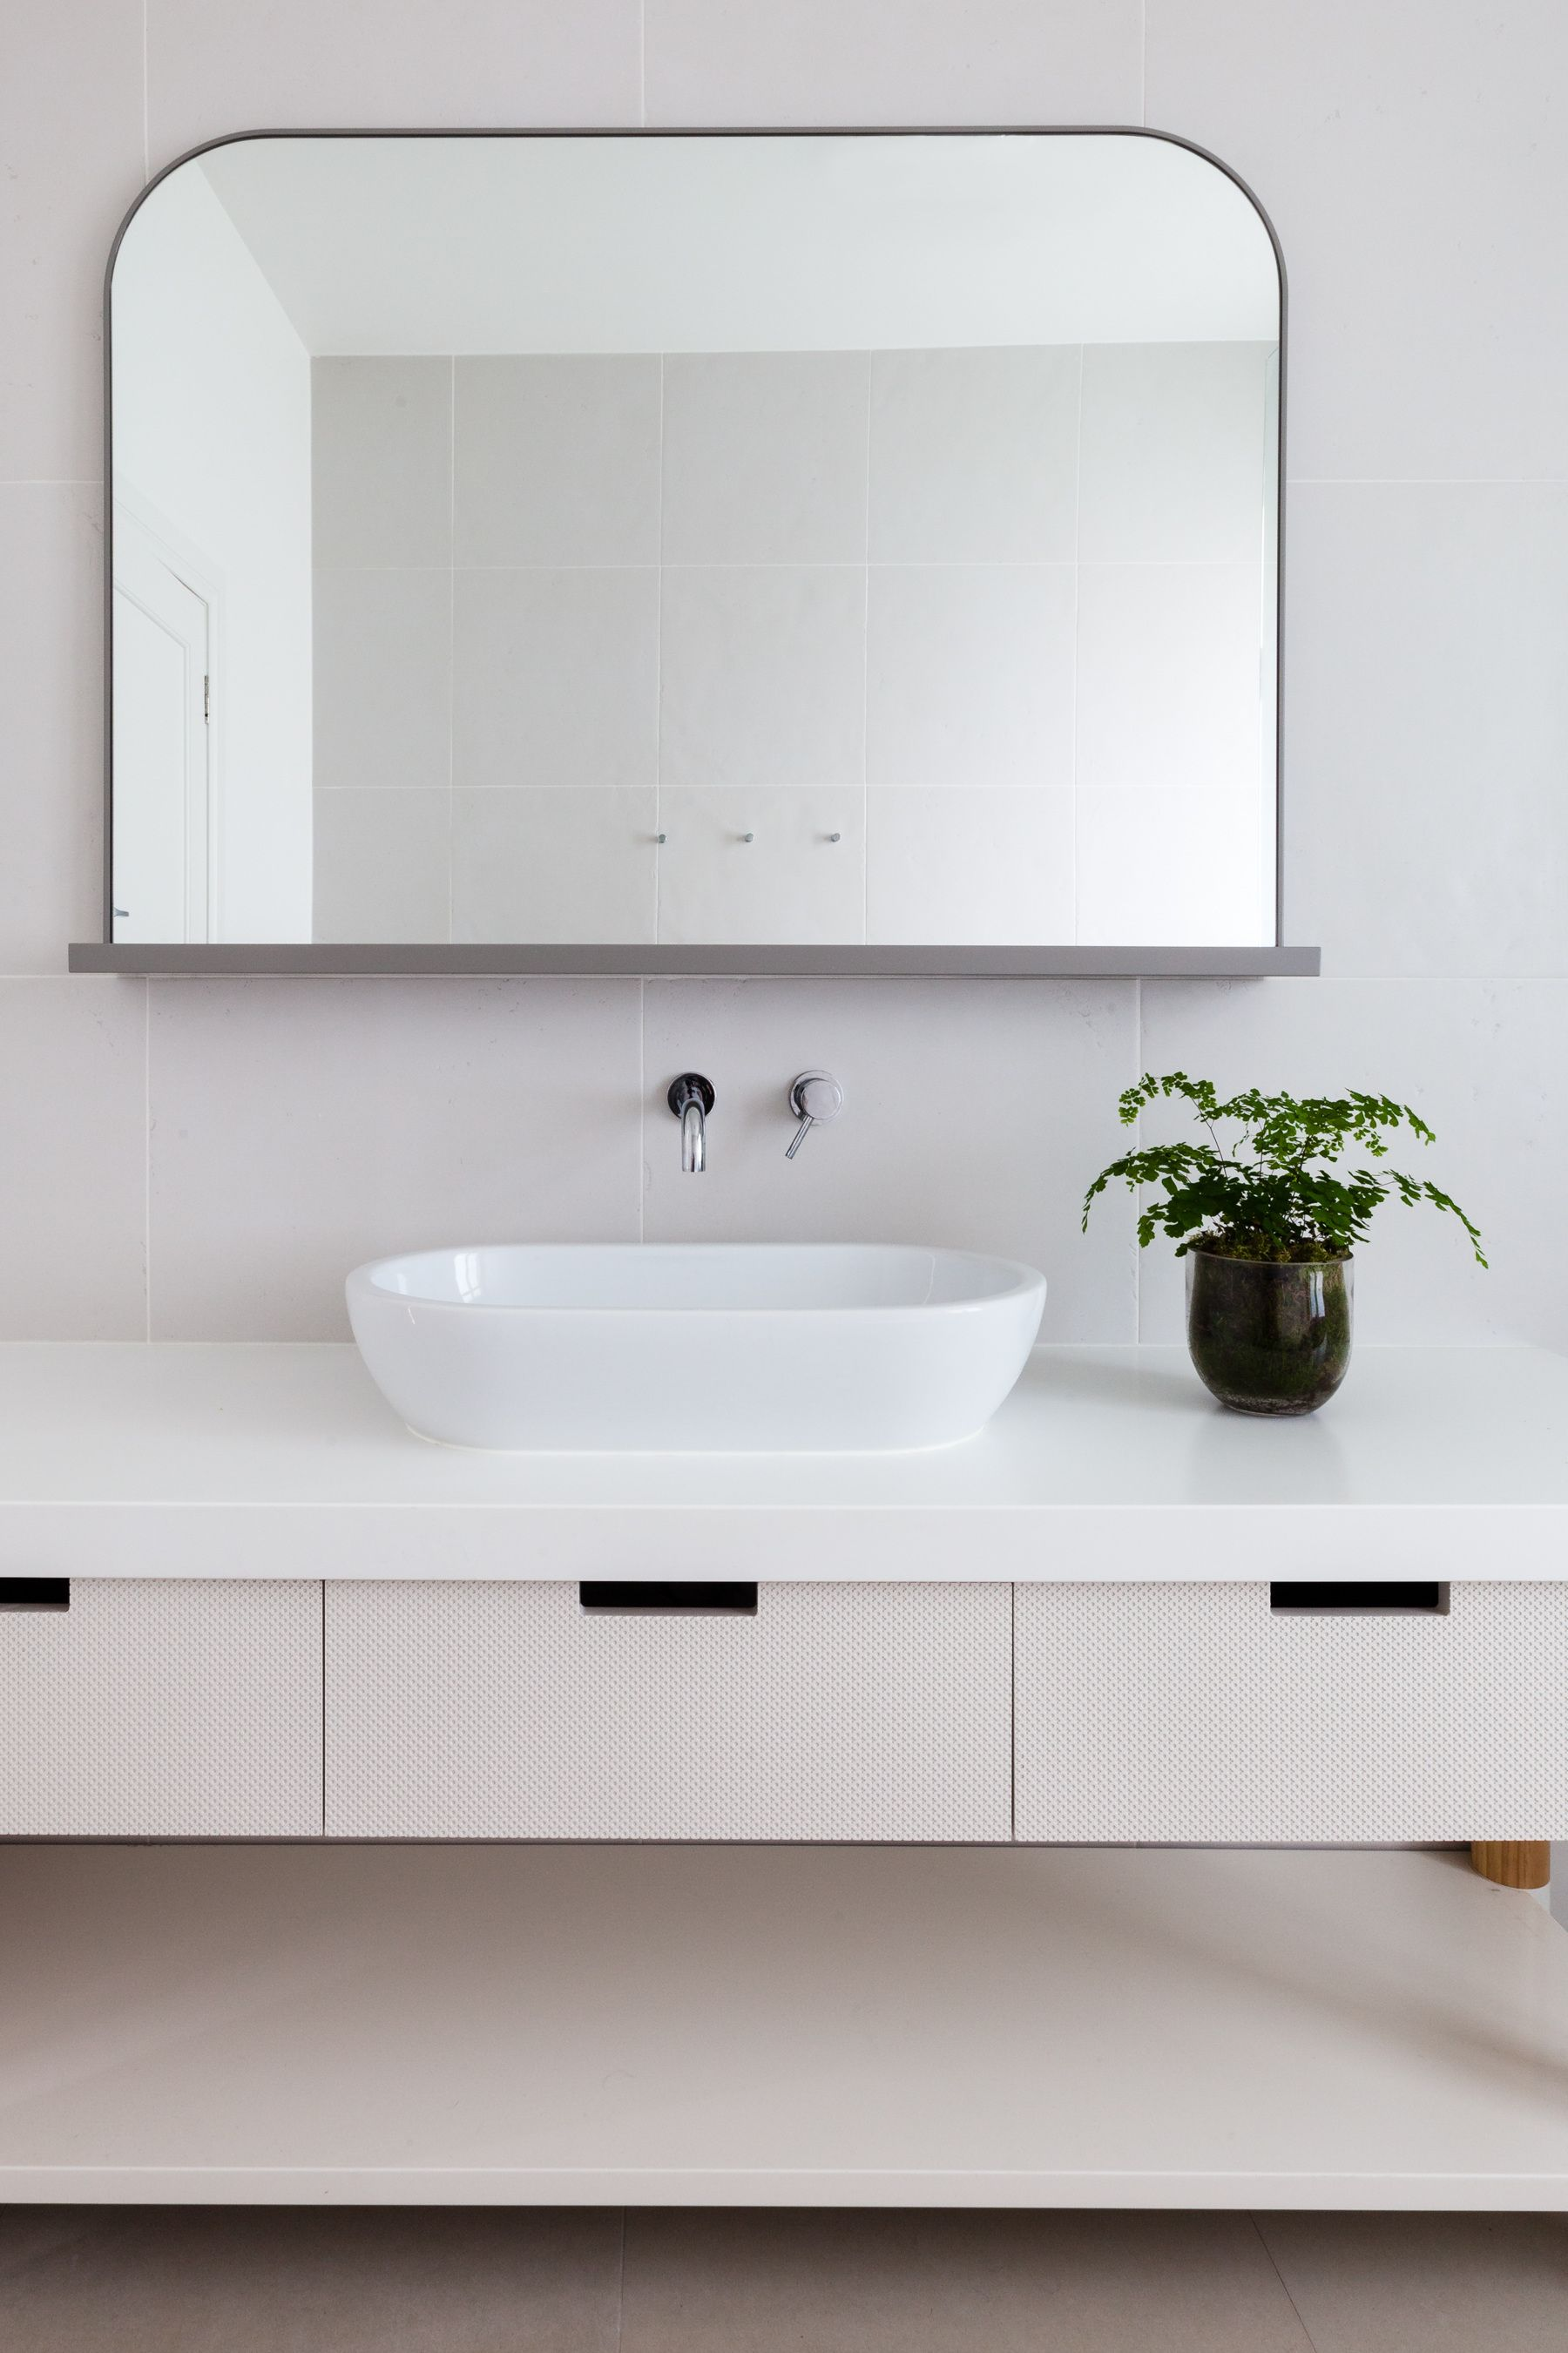 Bathroom Mirrors Melbourne interiors - amelia stanwix photography • melbourne based lifestyle